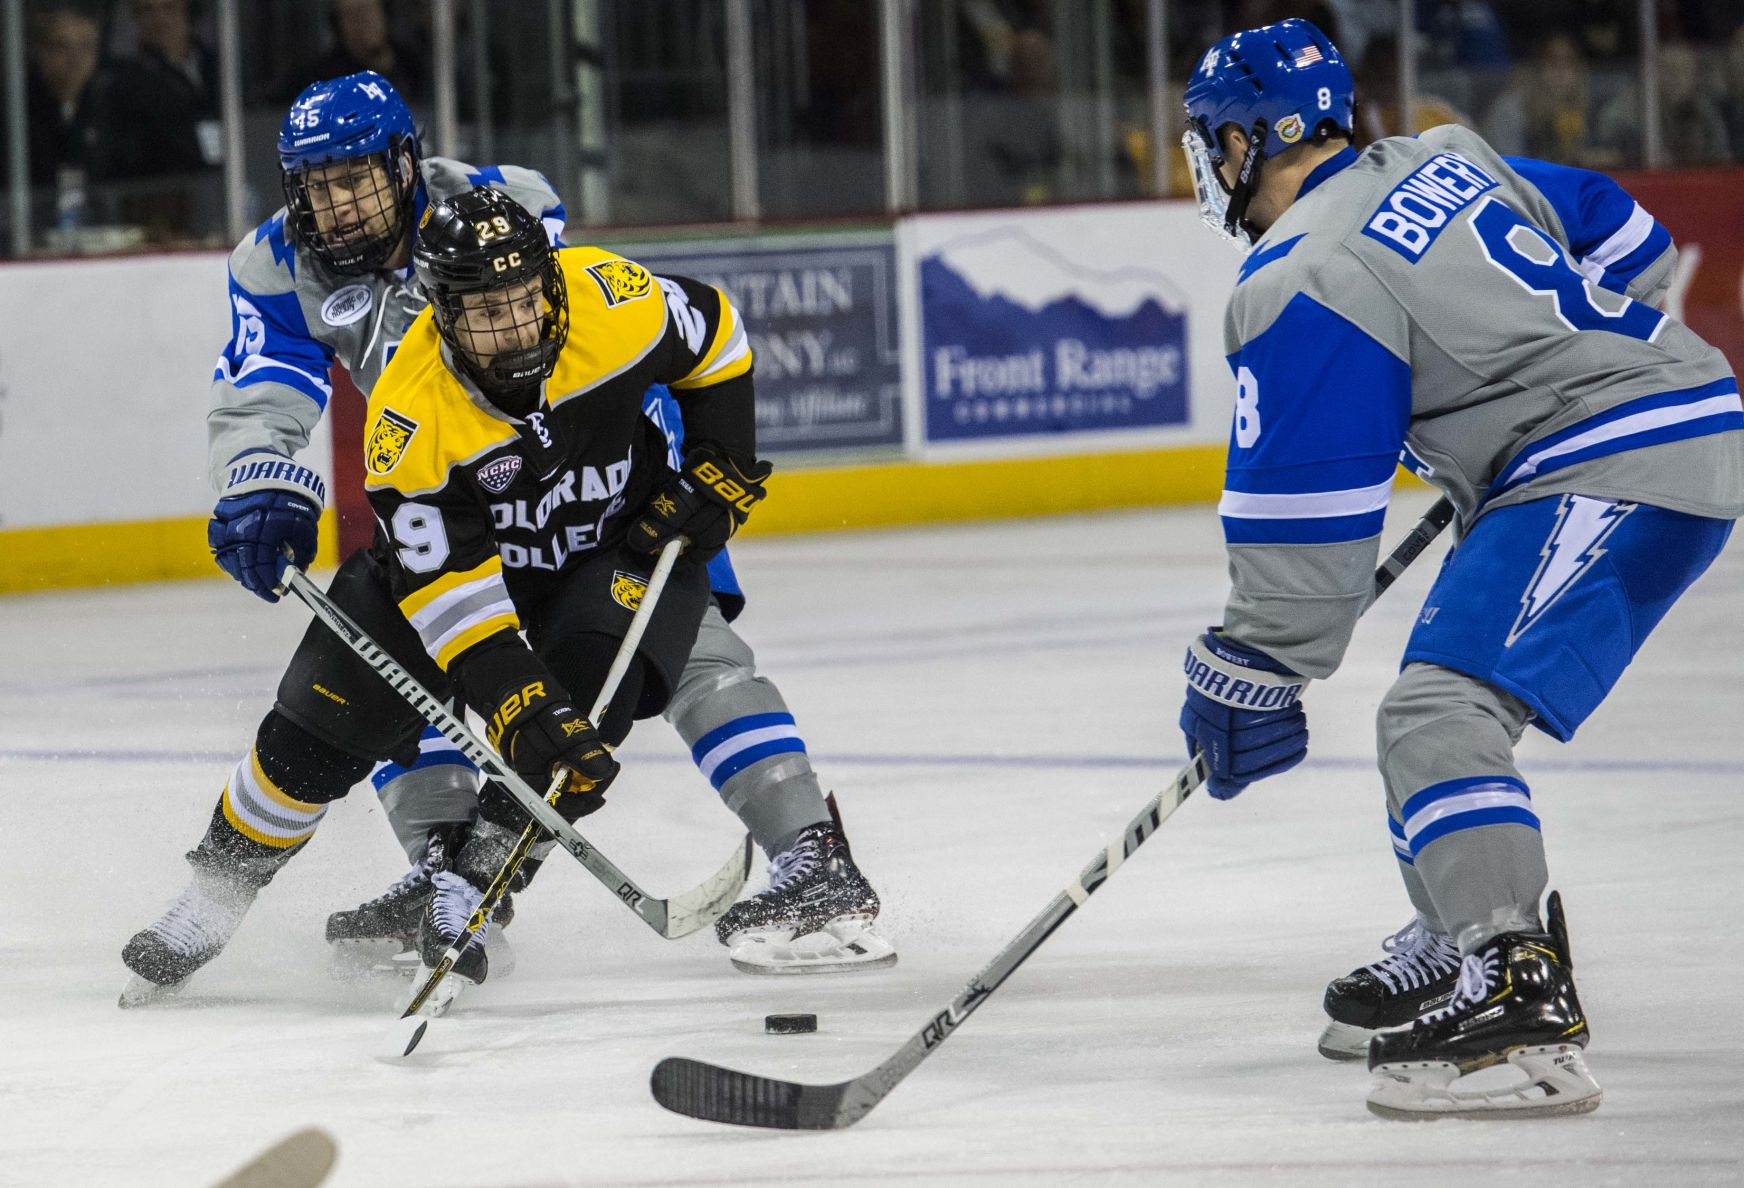 Colorado College Tigers On Top, At Falcons' Expense